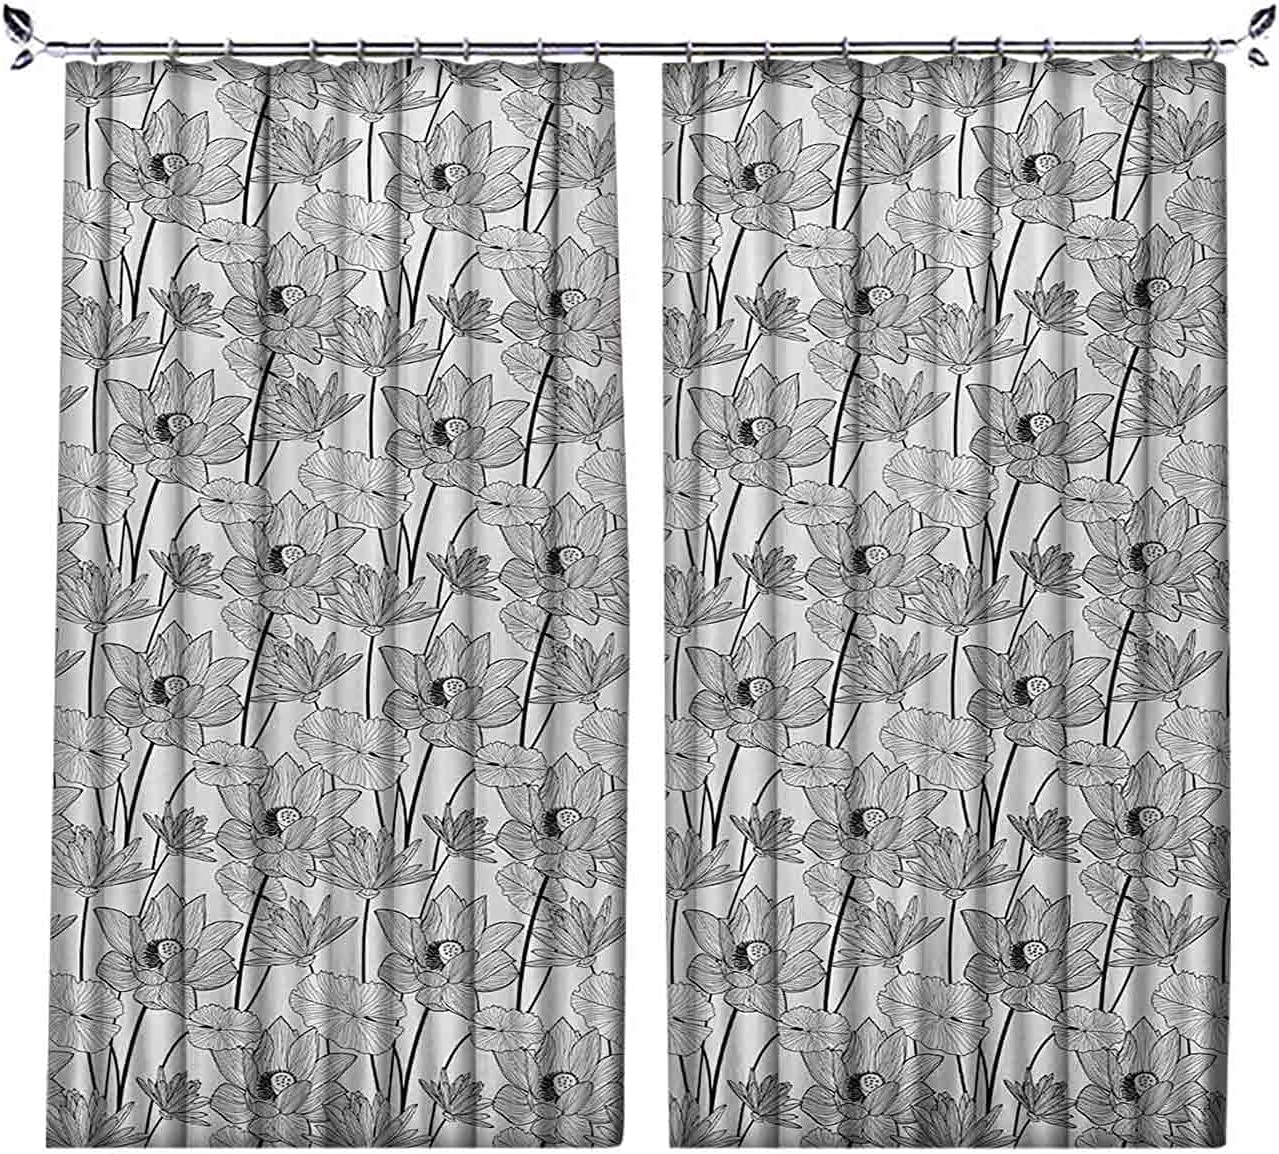 Pleated Heat Insulation Lotus Style Curtains 55% OFF Ill Sketch Max 59% OFF